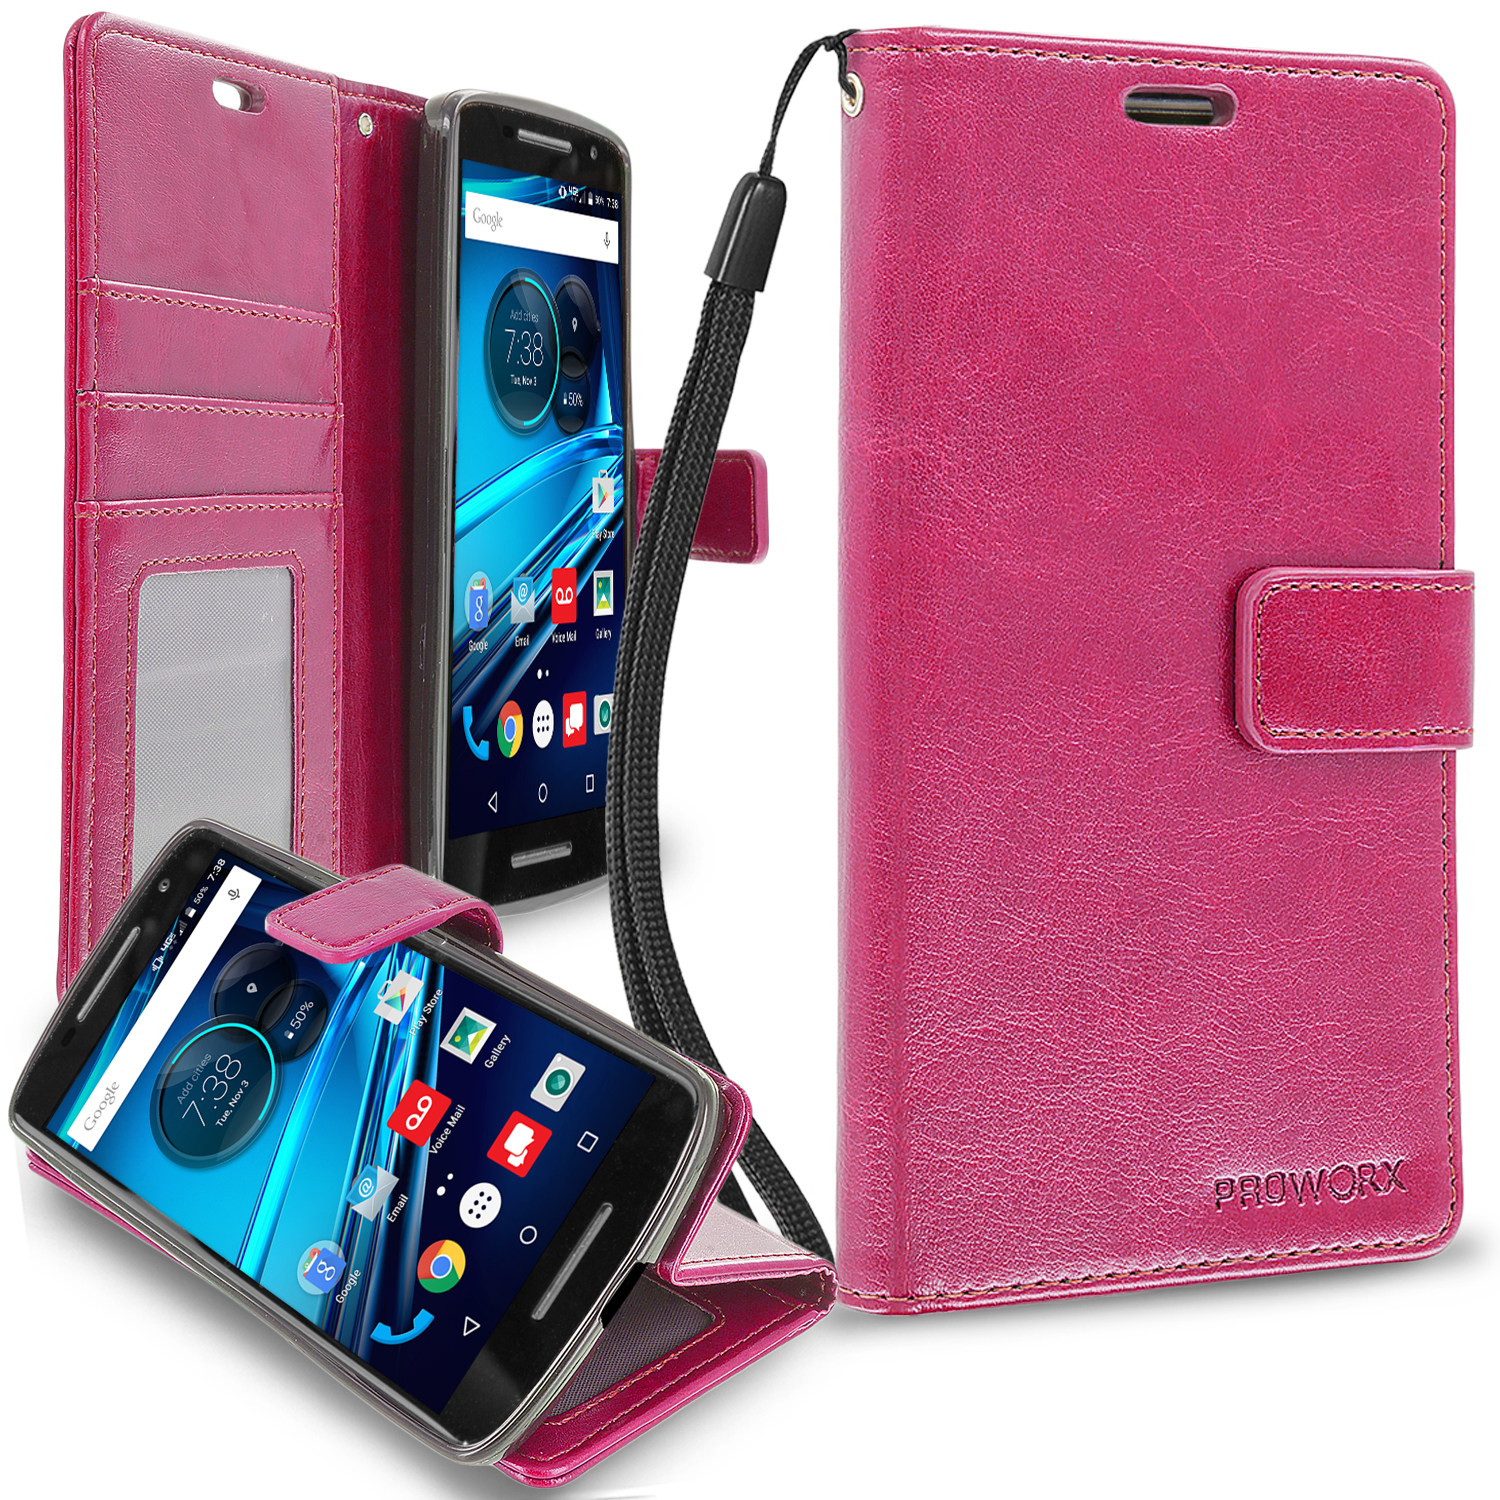 Motorola Droid Maxx 2 XT1565 Hot Pink ProWorx Wallet Case Luxury PU Leather Case Cover With Card Slots & Stand